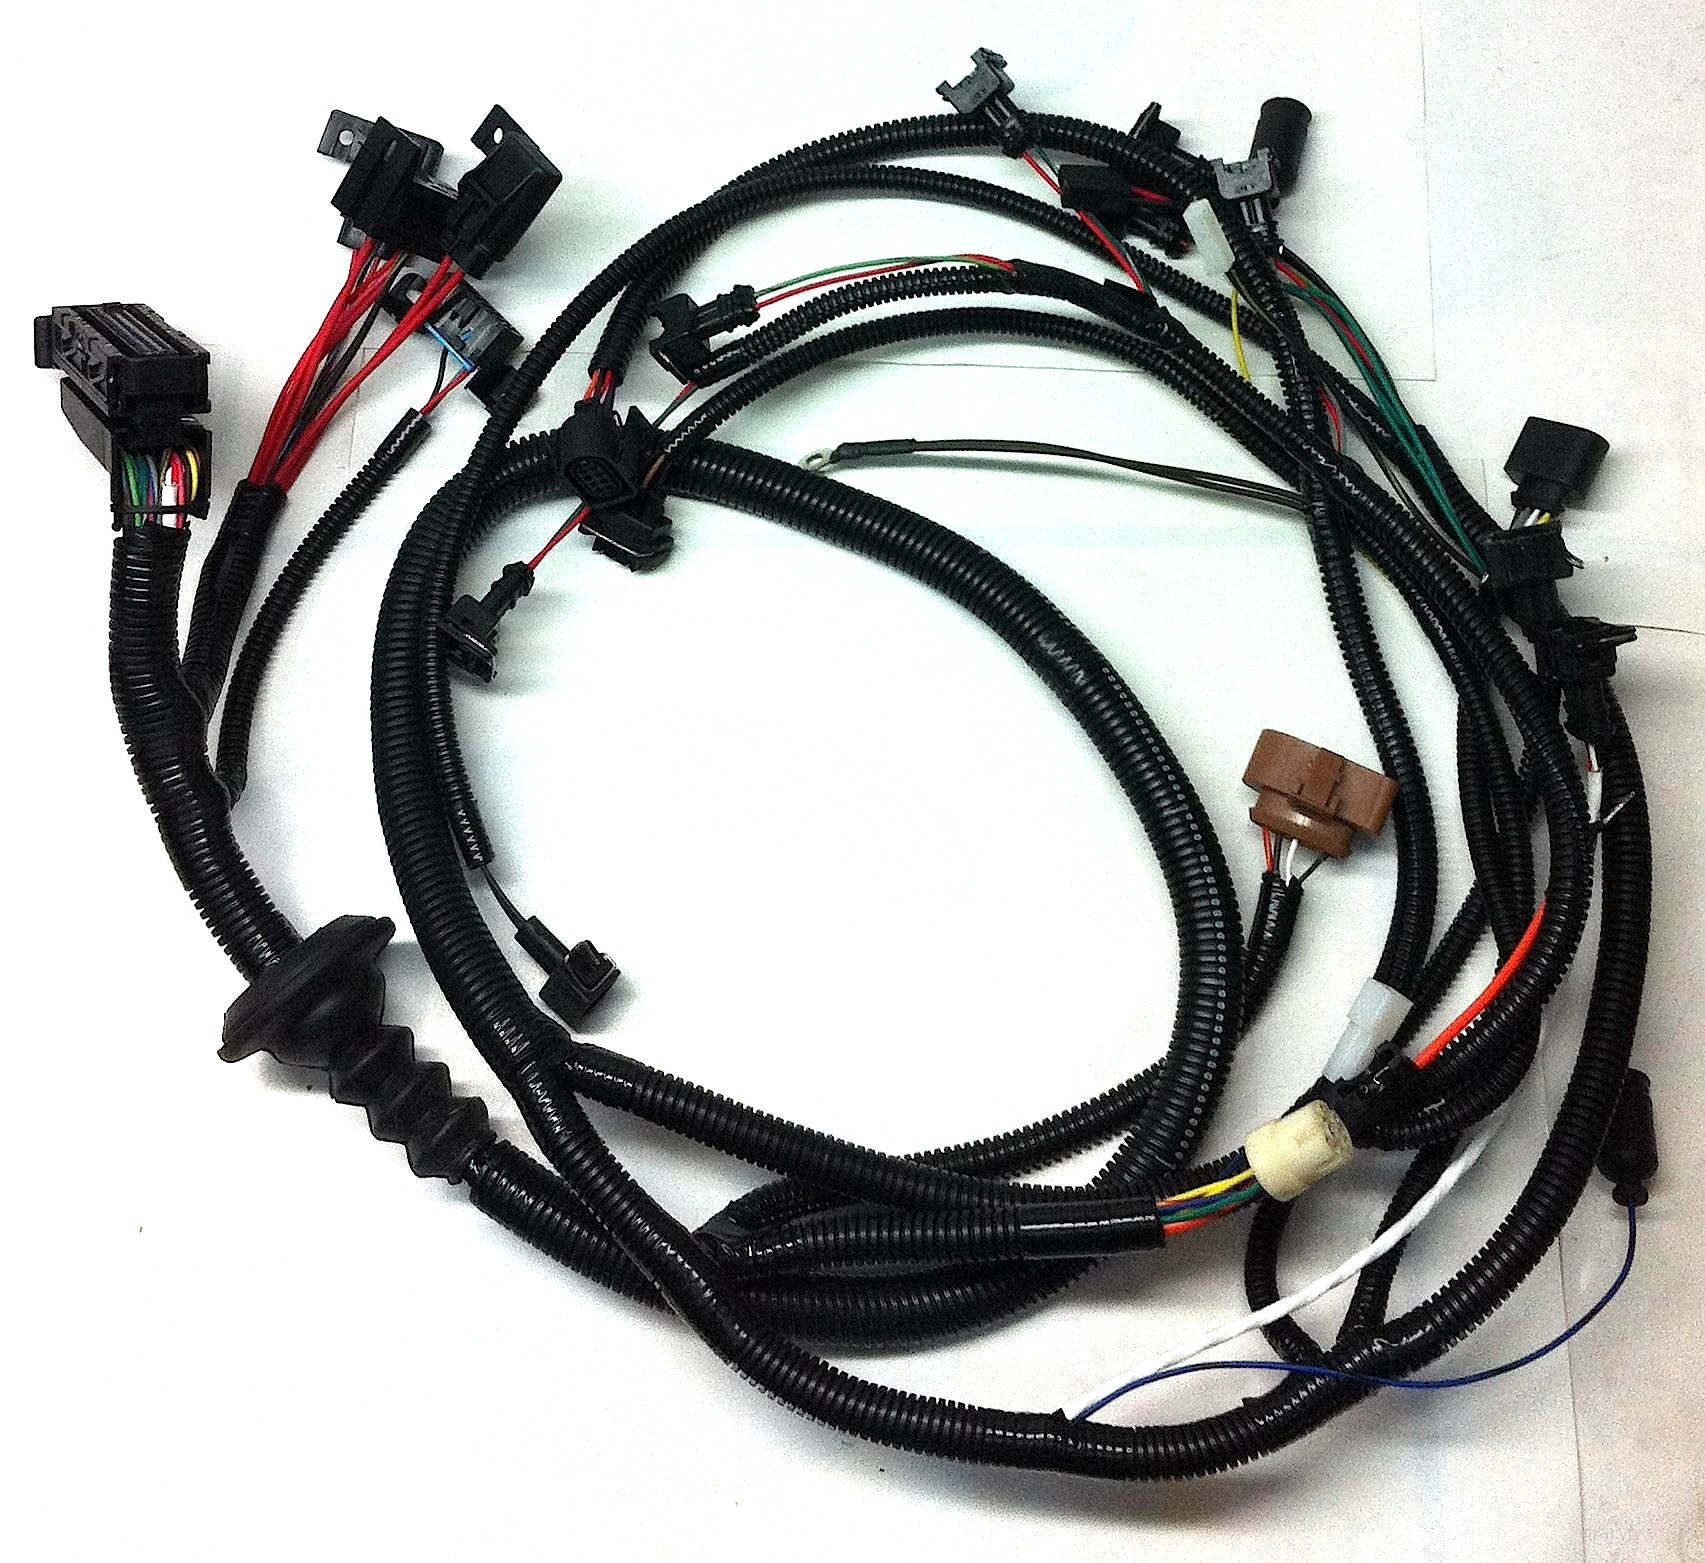 Wiring_Harness_2LR 2lr tiico conversion wiring harness foreign auto & supply, inc tdi swap wiring harness at bayanpartner.co